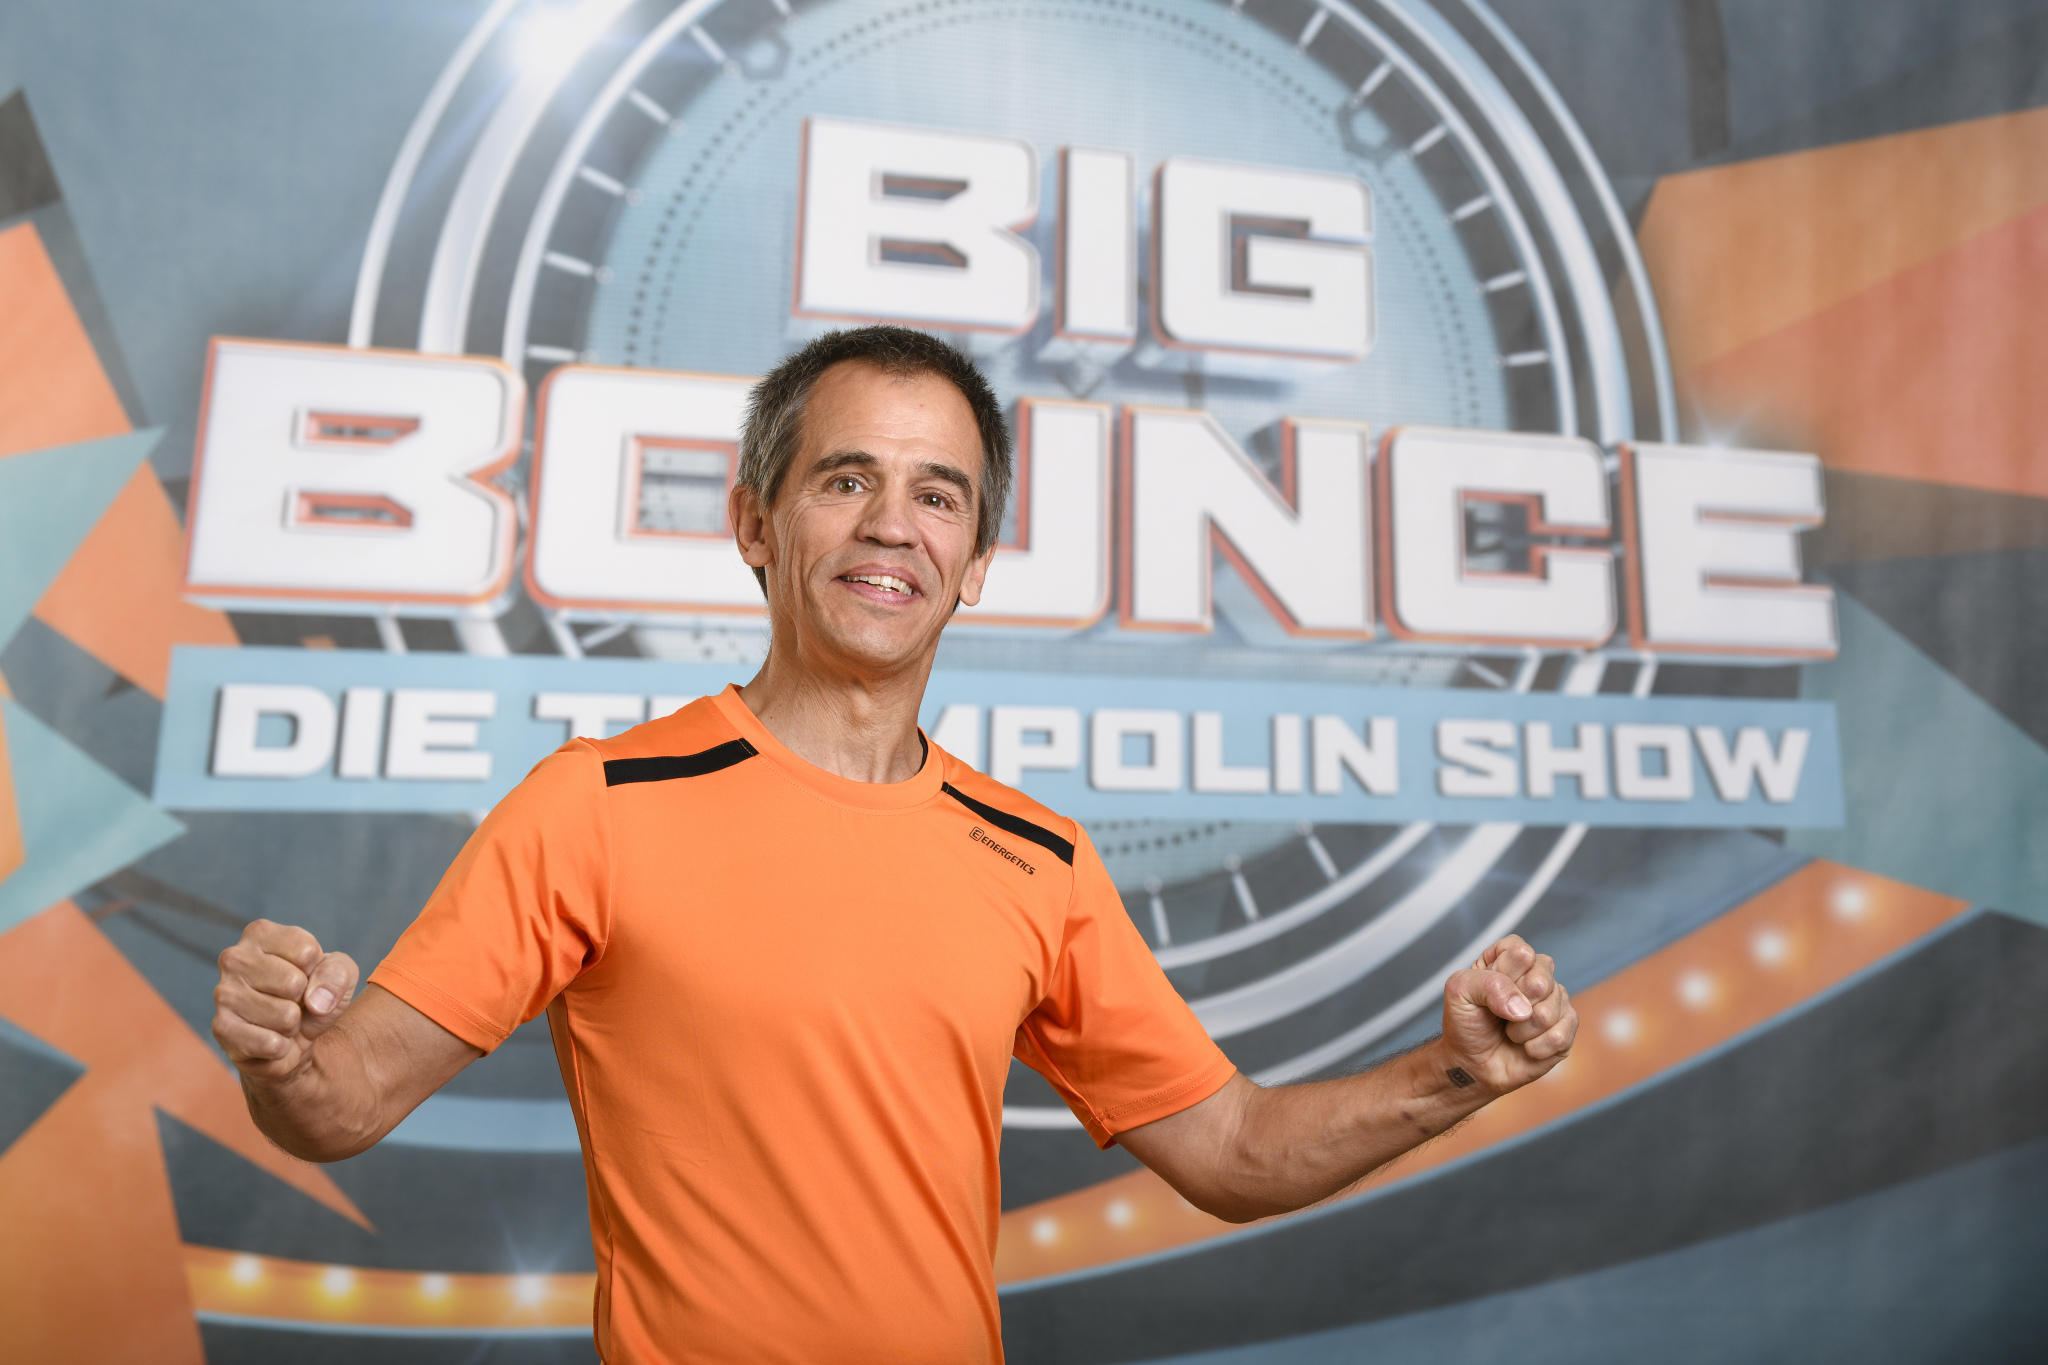 Big Bounce Kandidaten